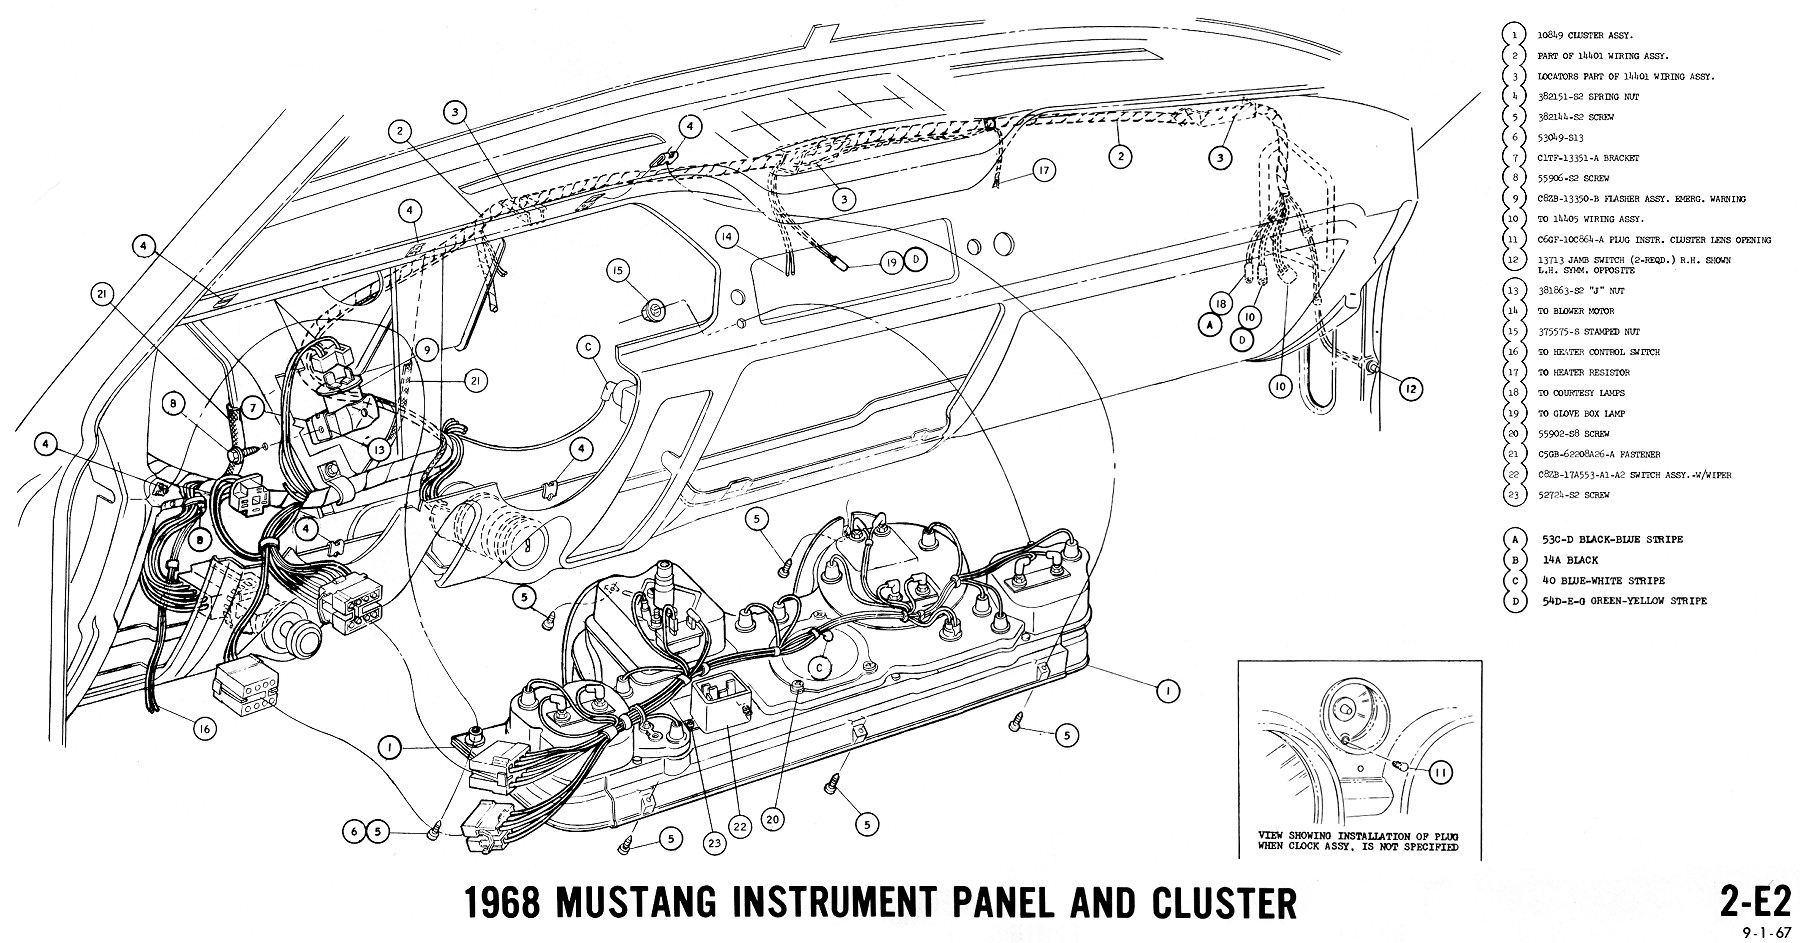 66 Mustang Gauge Diagram Wiring Diagram & Electricity Basics 101 \u2022  1966 Mustang Color Wiring Diagram 66 Mustang Gauge Wiring Diagram